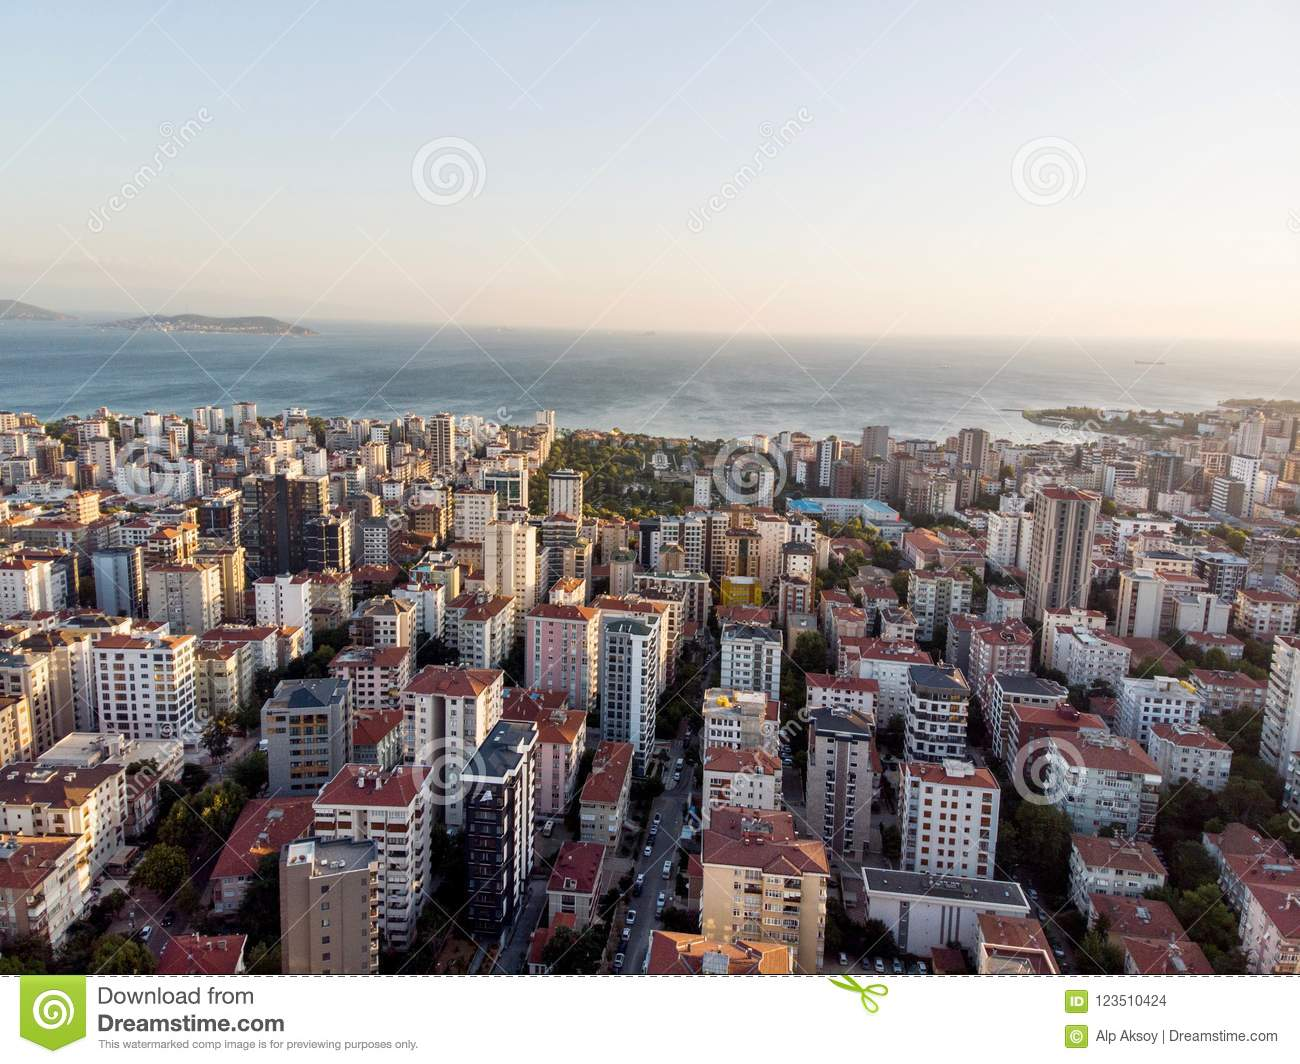 aerial drone view of city apartment buildings in goztepe istanbul